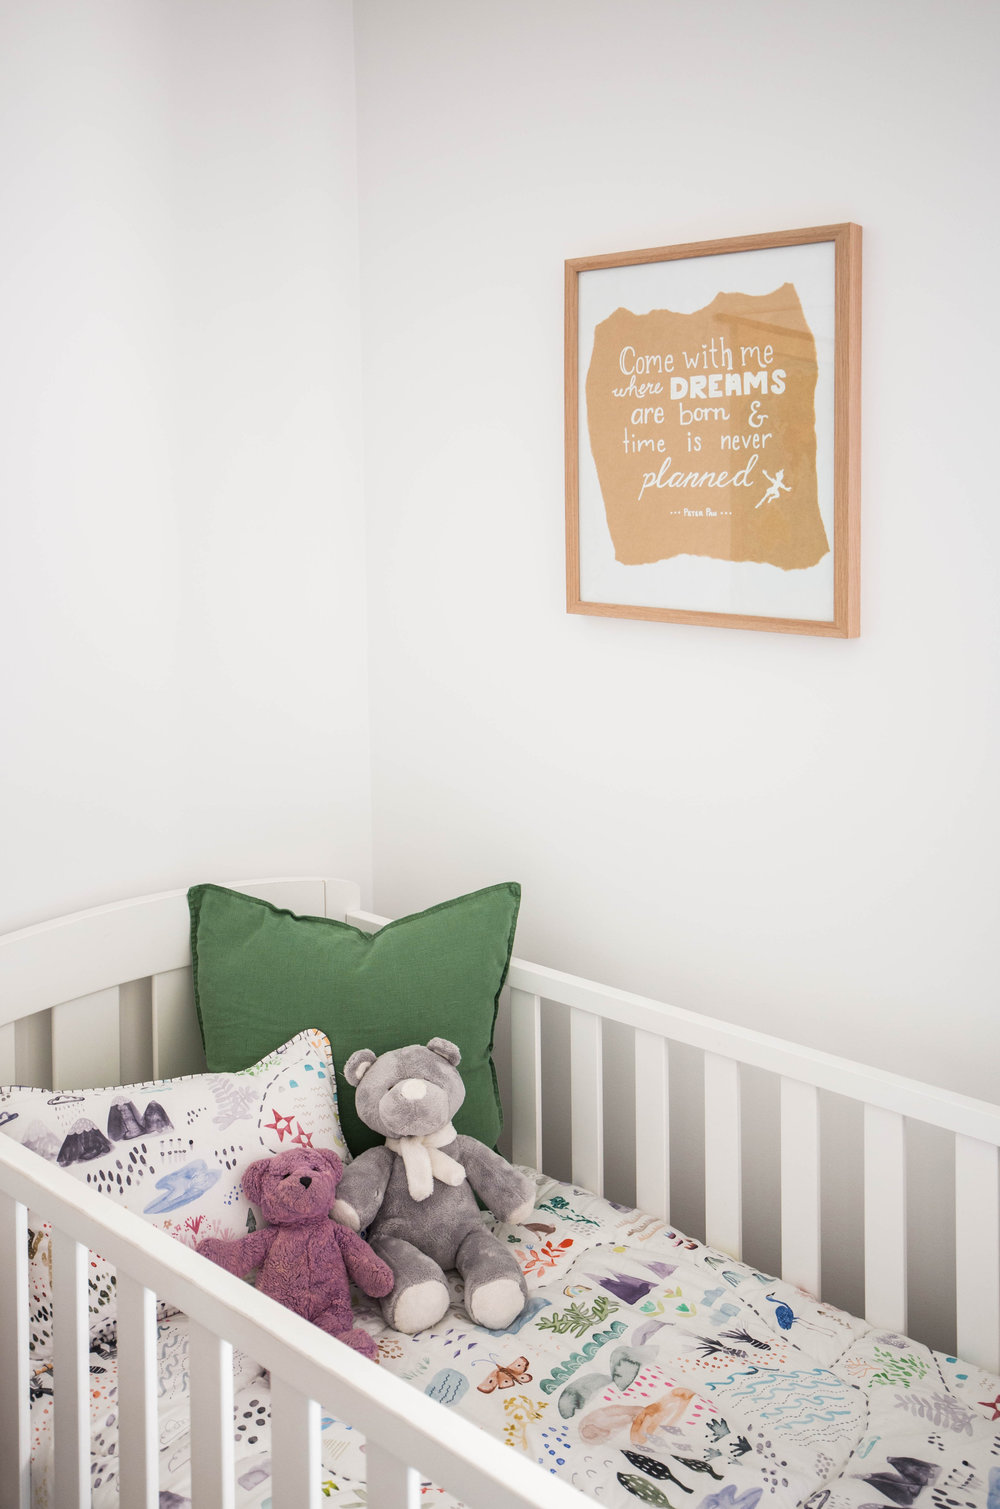 Tanika's Baby Room - Nursery - Interior Design - Tanika Blair Stying & Photography - IMG_8904.jpg